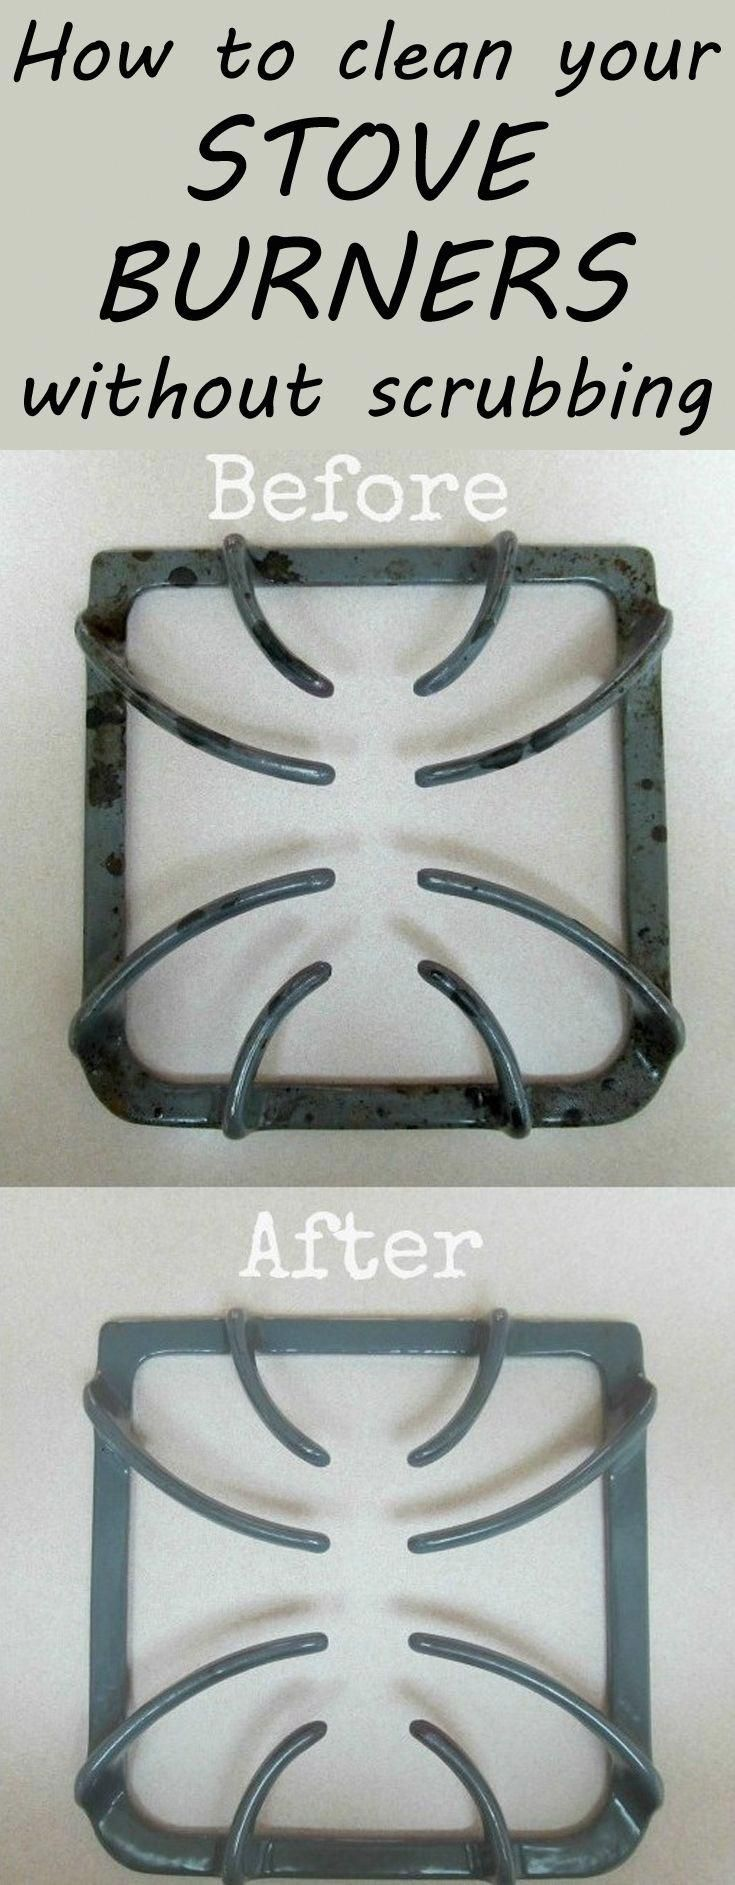 Pin by Jolanta on Cleaning in 2020 Clean stove, Cleaning